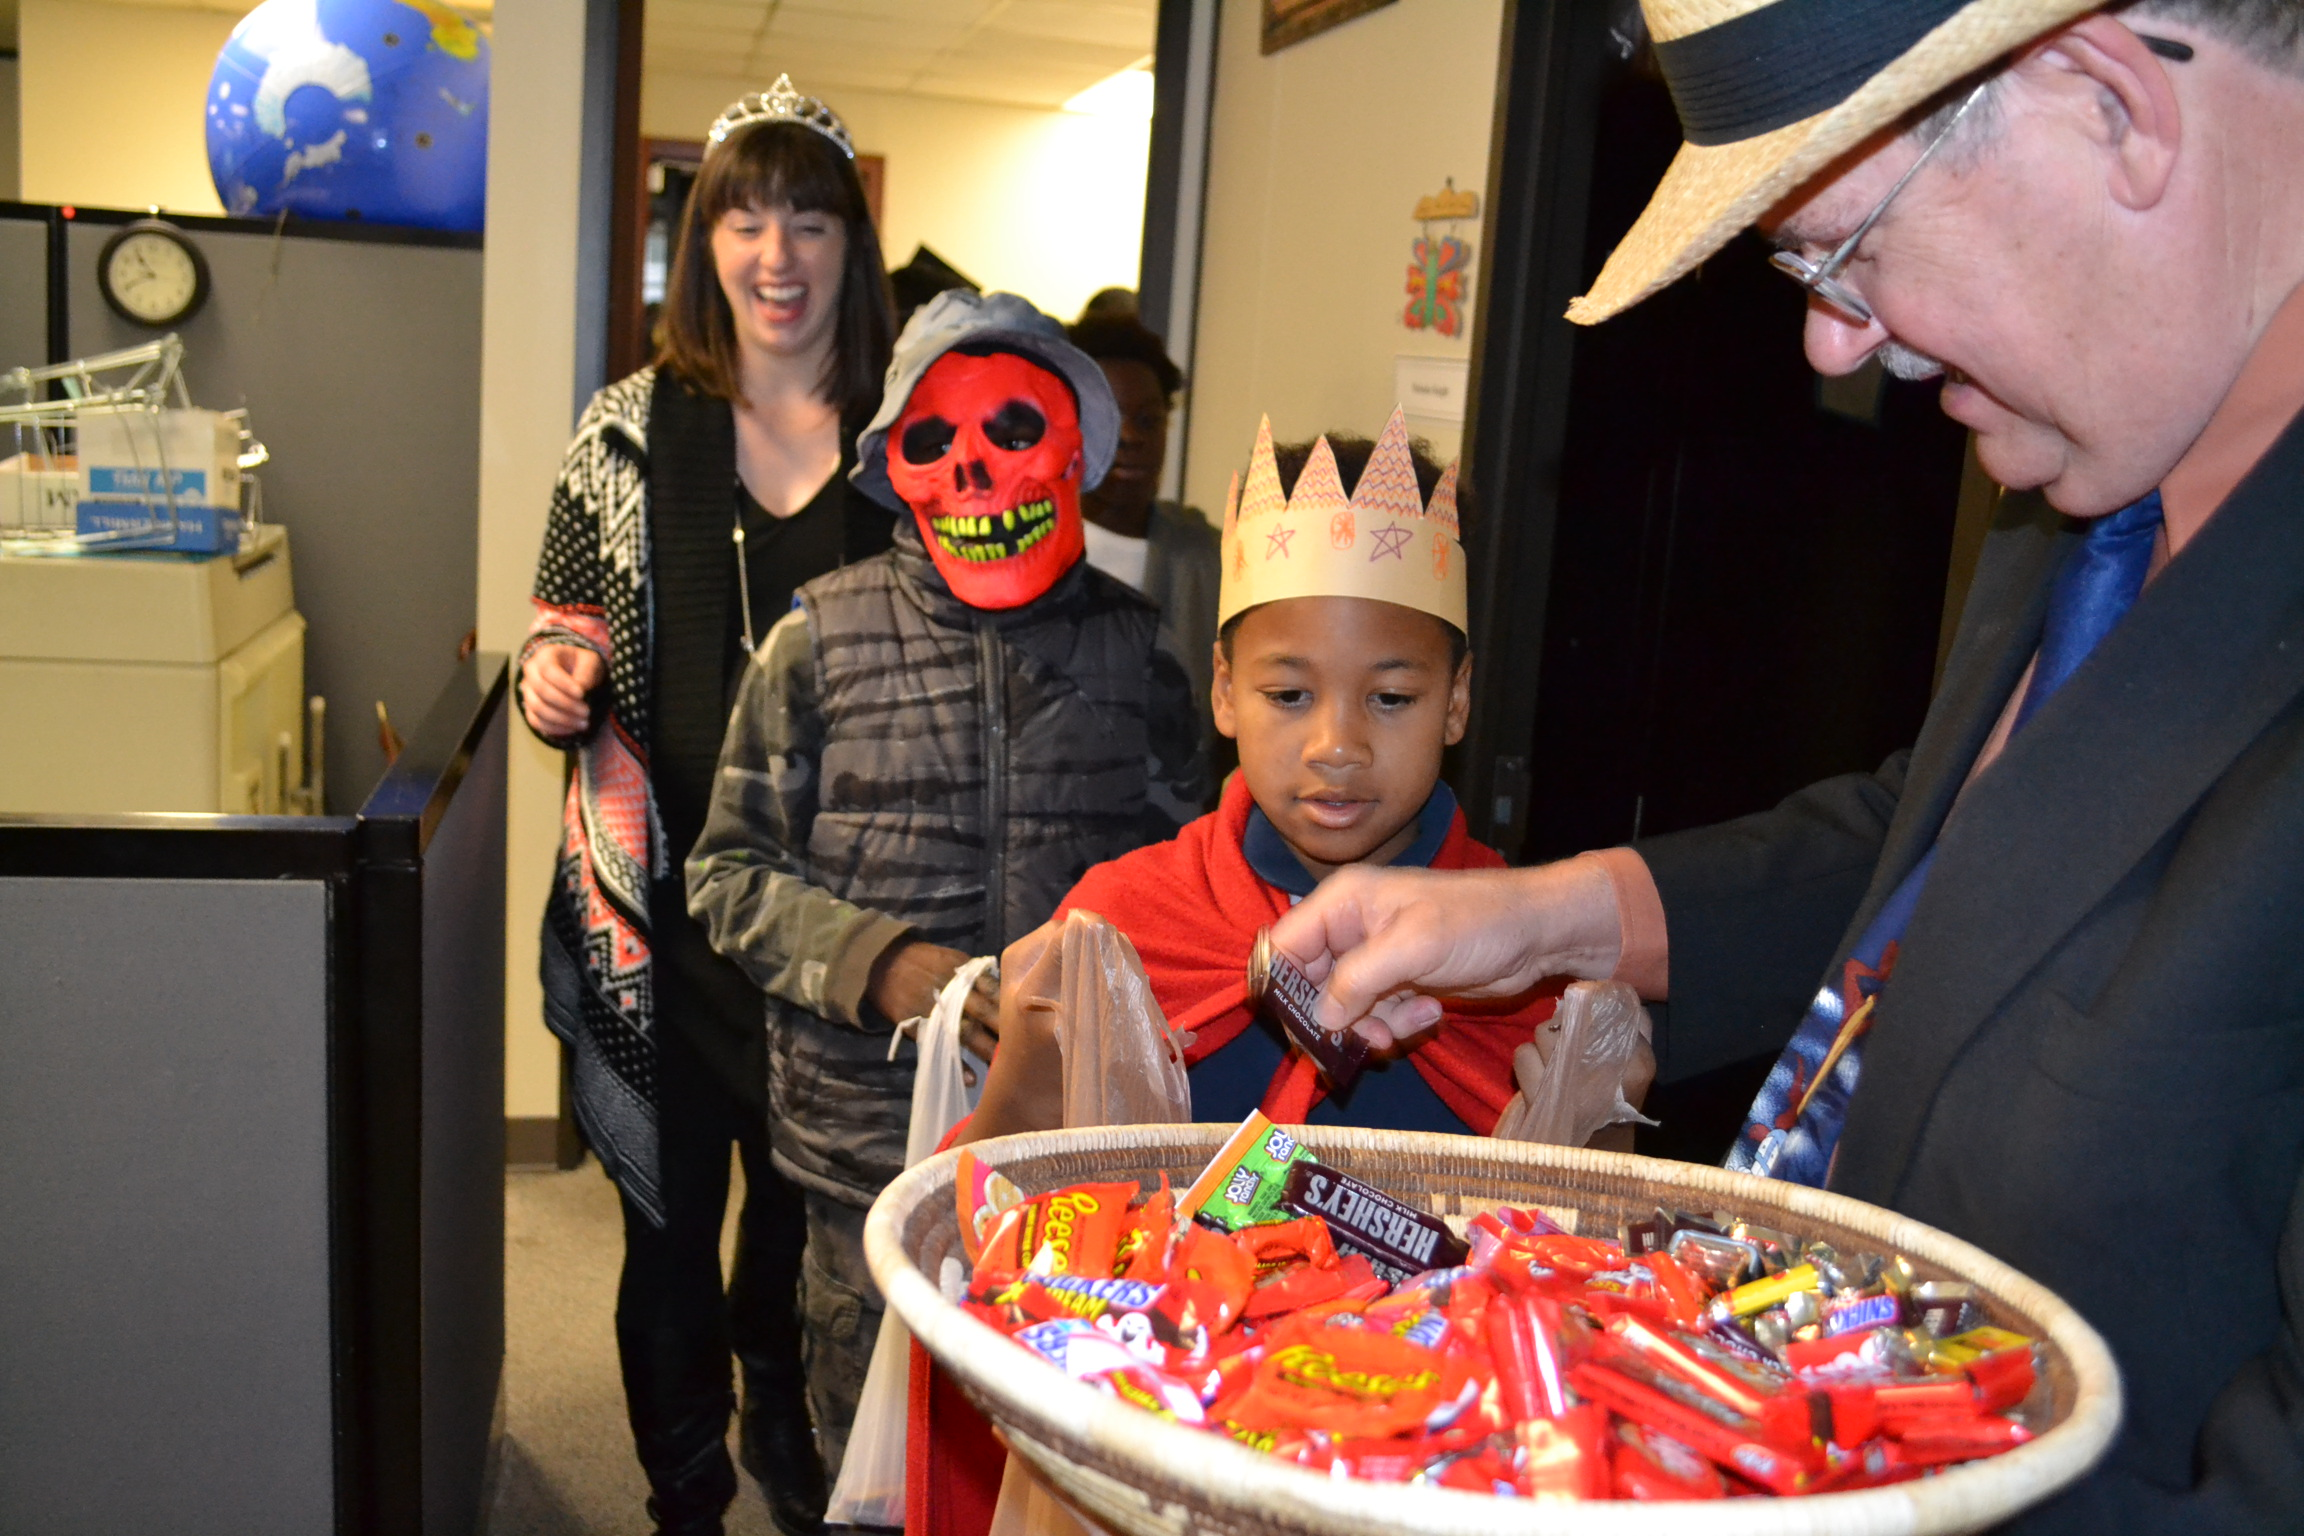 Students from St. Francis Seraph School get candy from Mike Gable of the Archdiocese of Cincinnati Mission Office on Oct. 30. (CT Photo/John Stegeman)